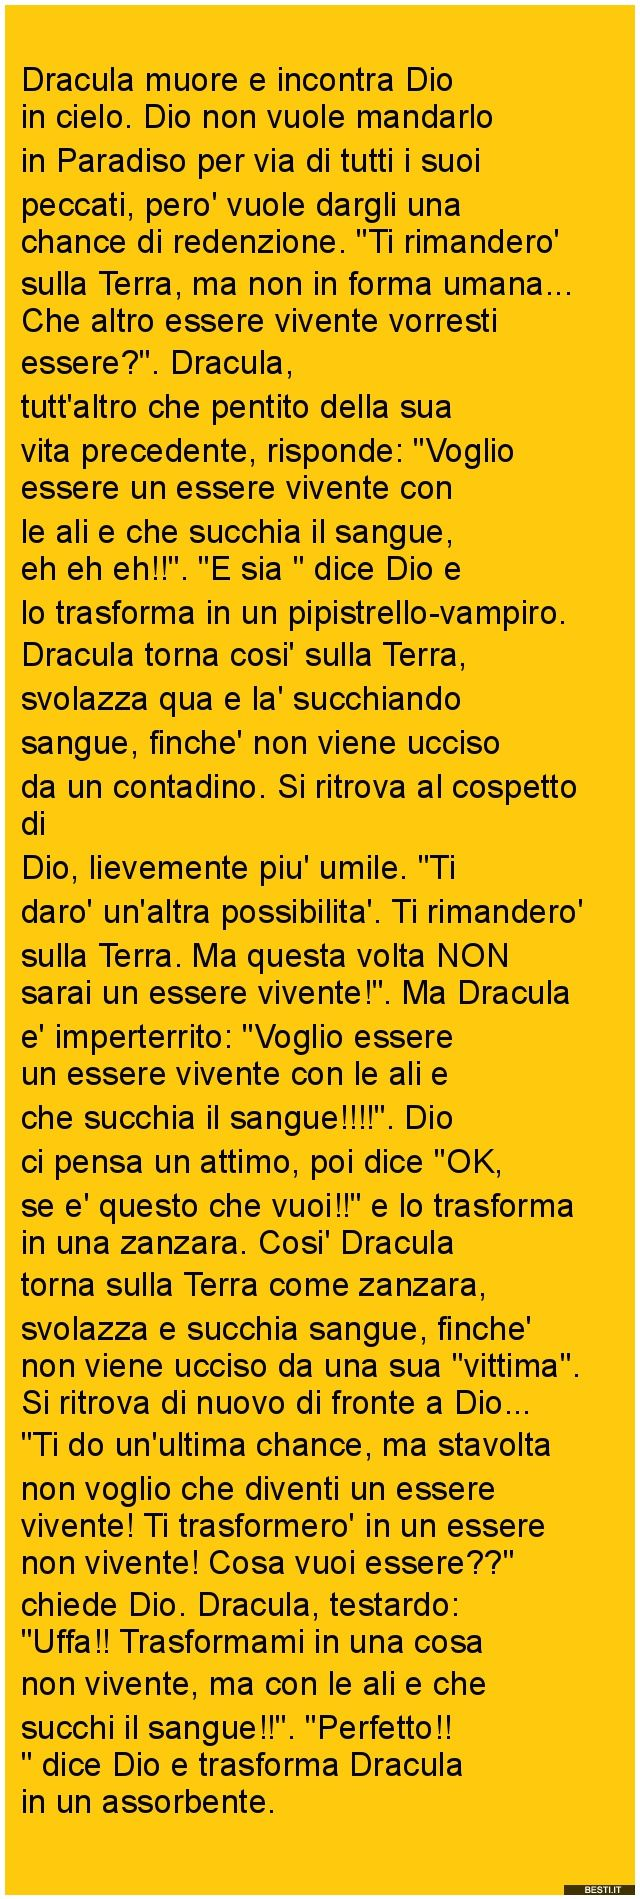 Dracula muore | BESTI.it - immagini divertenti, foto, barzellette, video